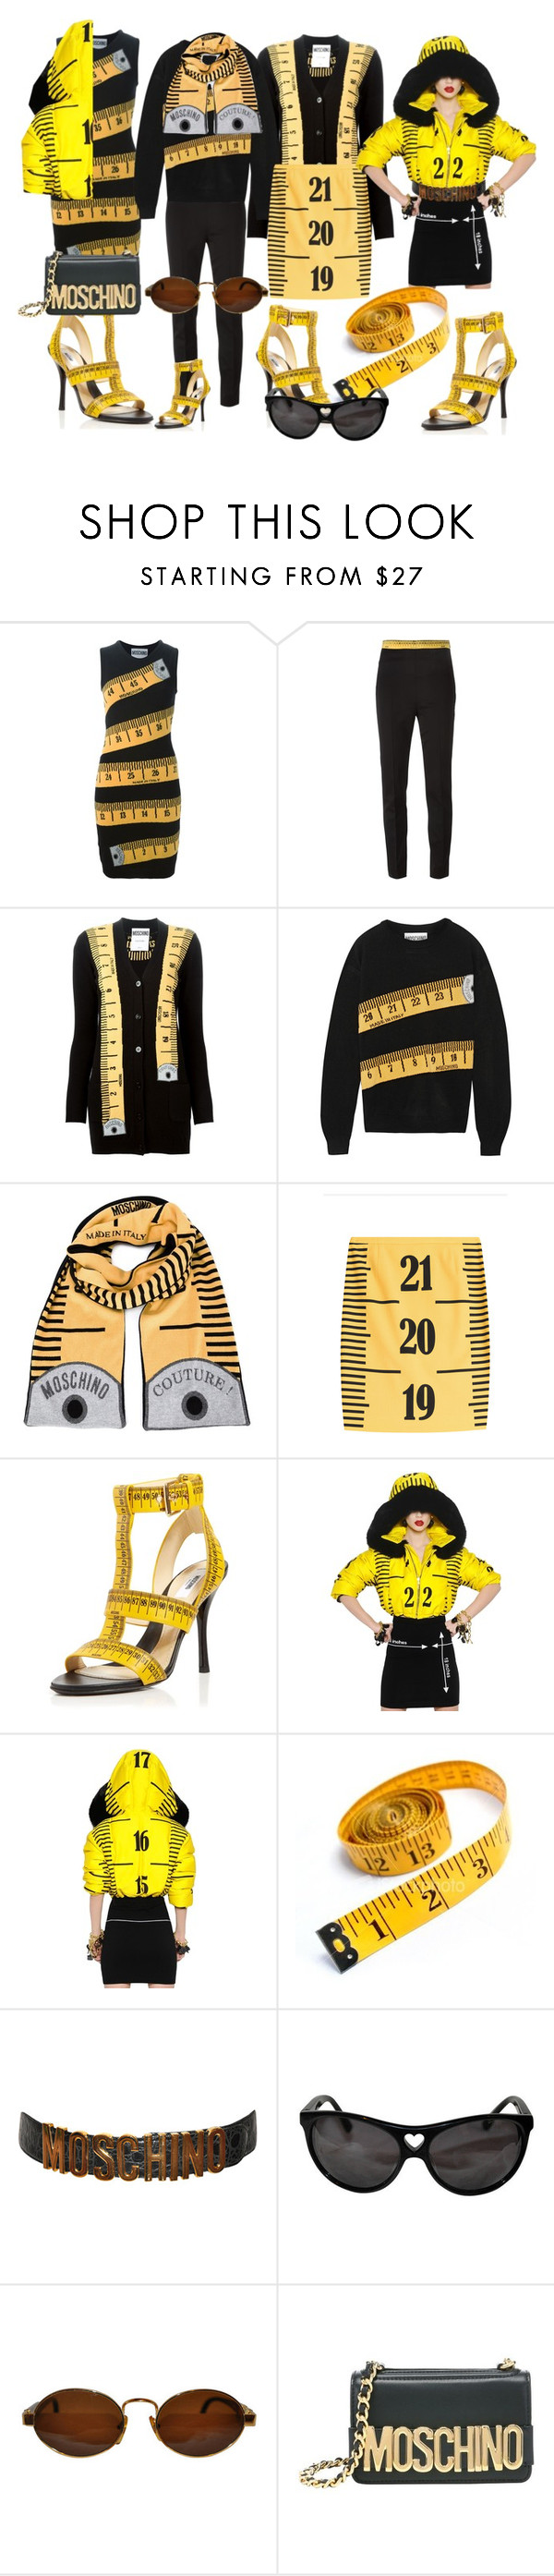 """""""Moschino Tape Measure Sisters"""" by egordon2 ❤ liked on Polyvore featuring Moschino, sisters, sisterlove and TapeMeasure"""